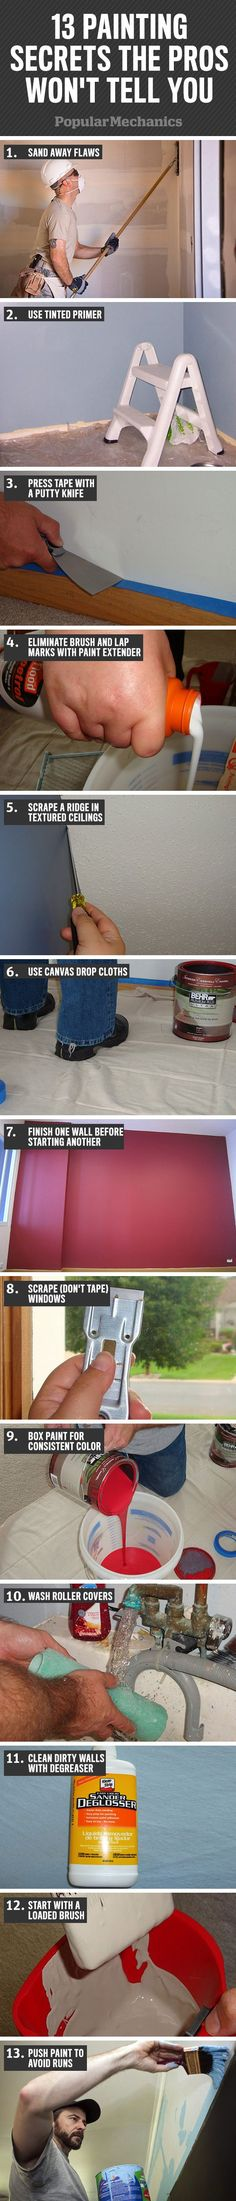 13 Painting Secrets the Pros Won't Tell You ByBrett Martin Each painter has slightly different methods and preferences, but the pros all know the trade secrets. For an in depth look at this …